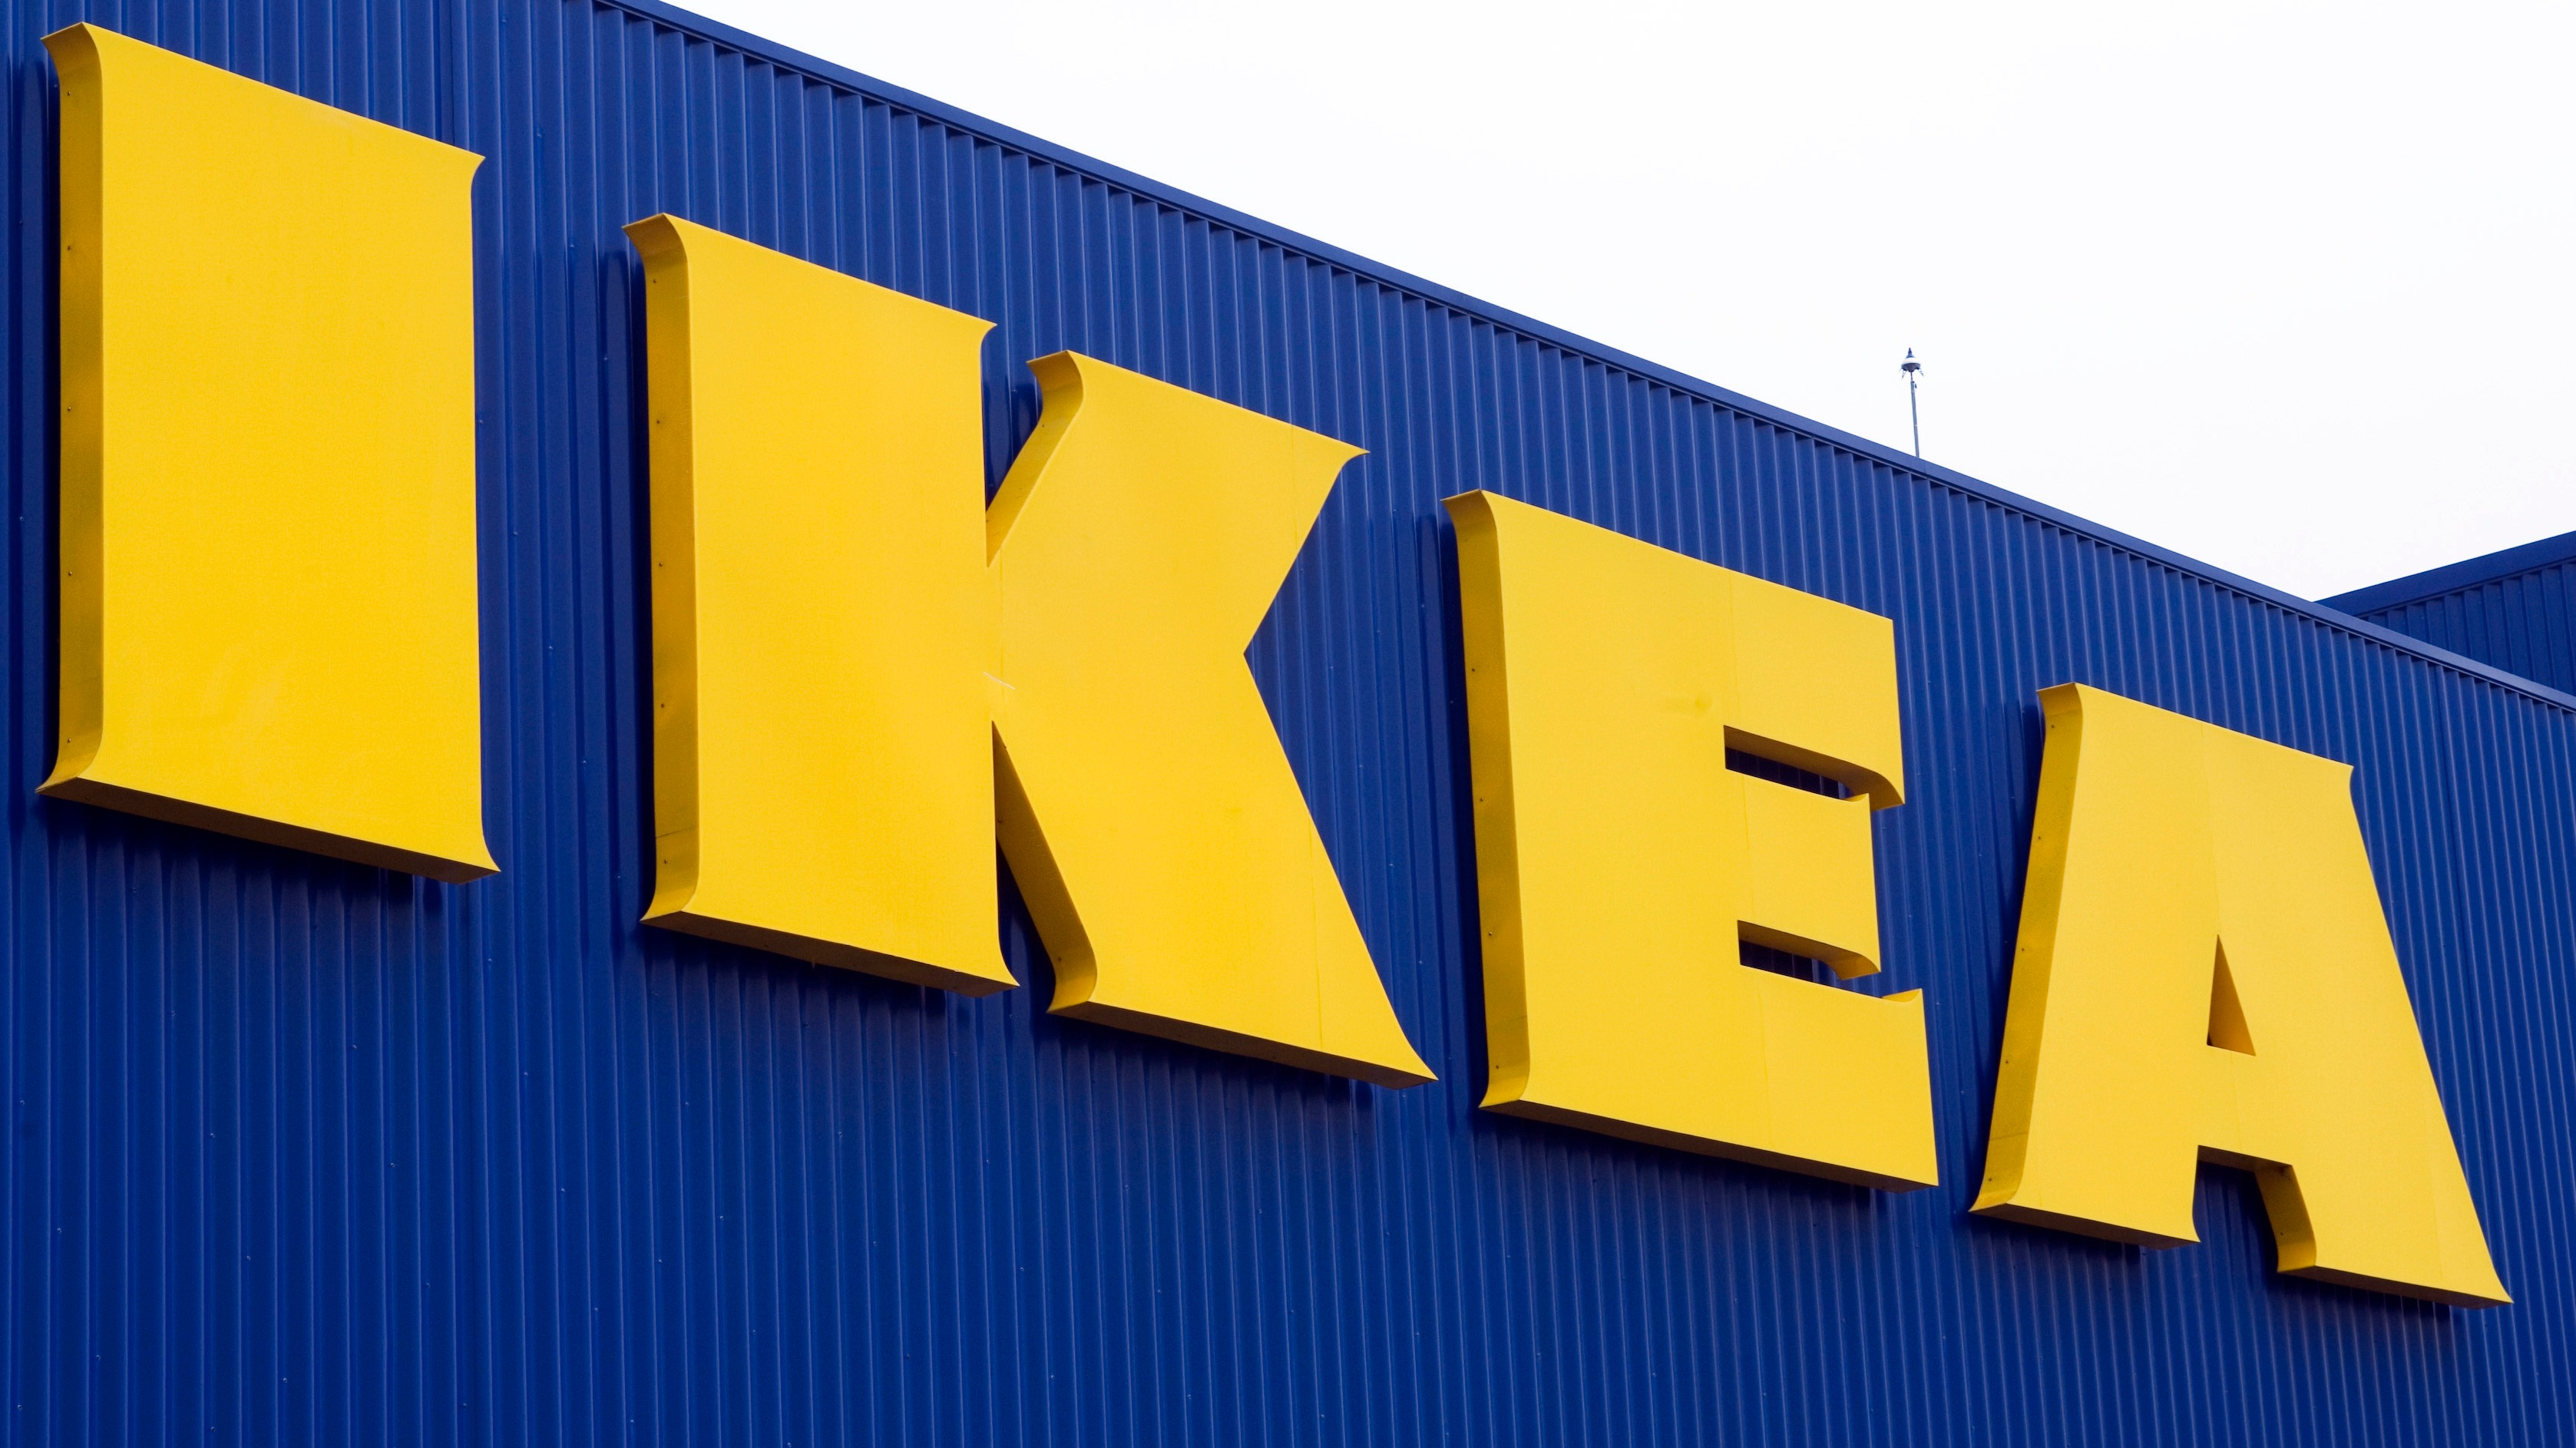 Ikea Issue Safety Alert After Two Children Killed By: ikea security jobs